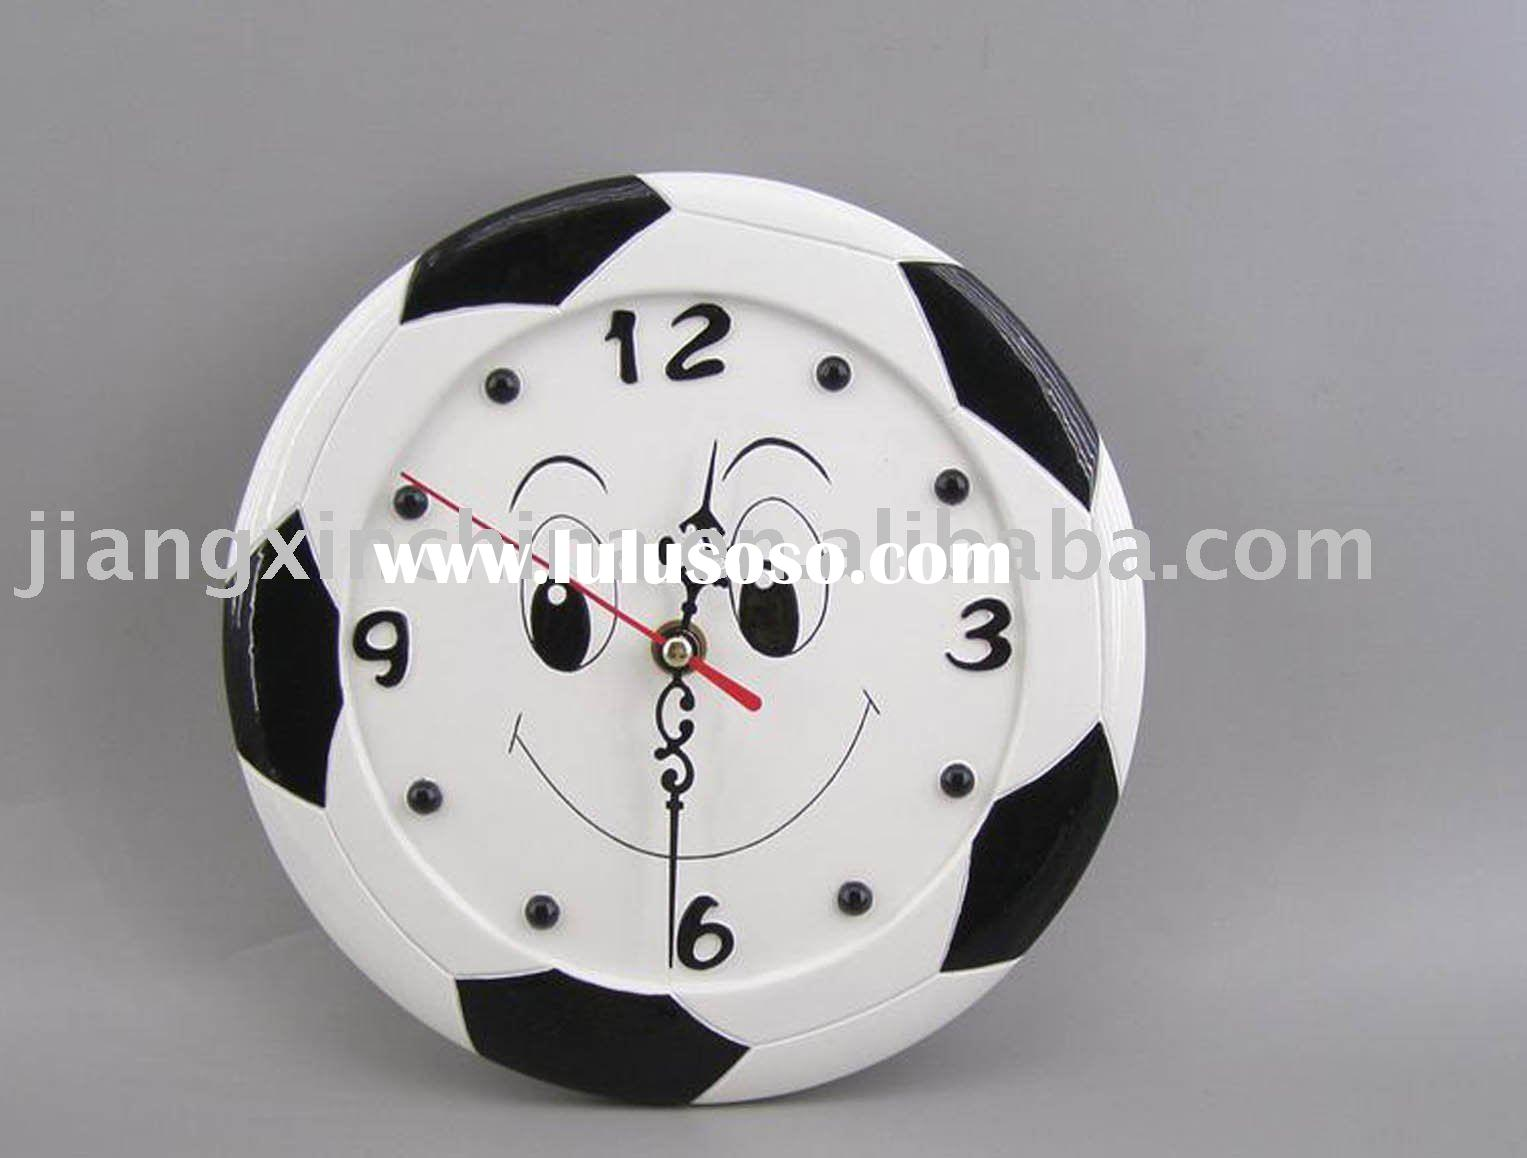 Plastic football outline border digital wall clock